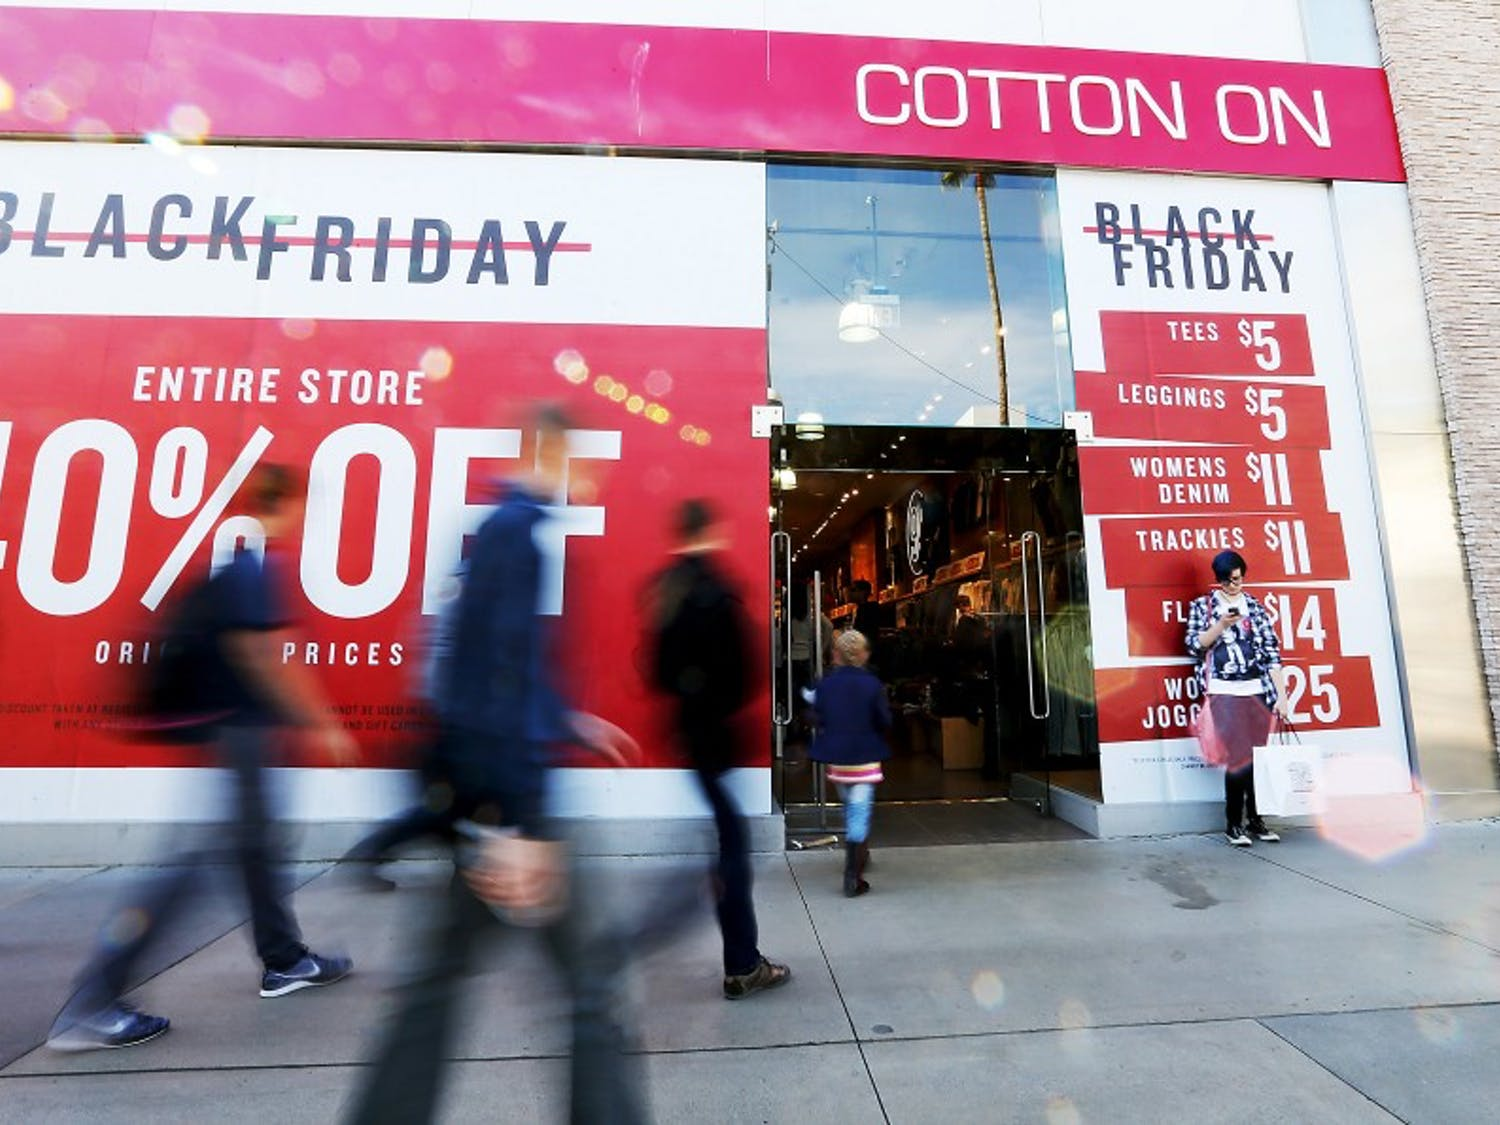 Shoppers flock to a store advertising steep discounts along the Third Street Promenade in Santa Monica, Calif., on Friday, Nov. 27, 2015. (Luis Sinco/Los Angeles Times/TNS)